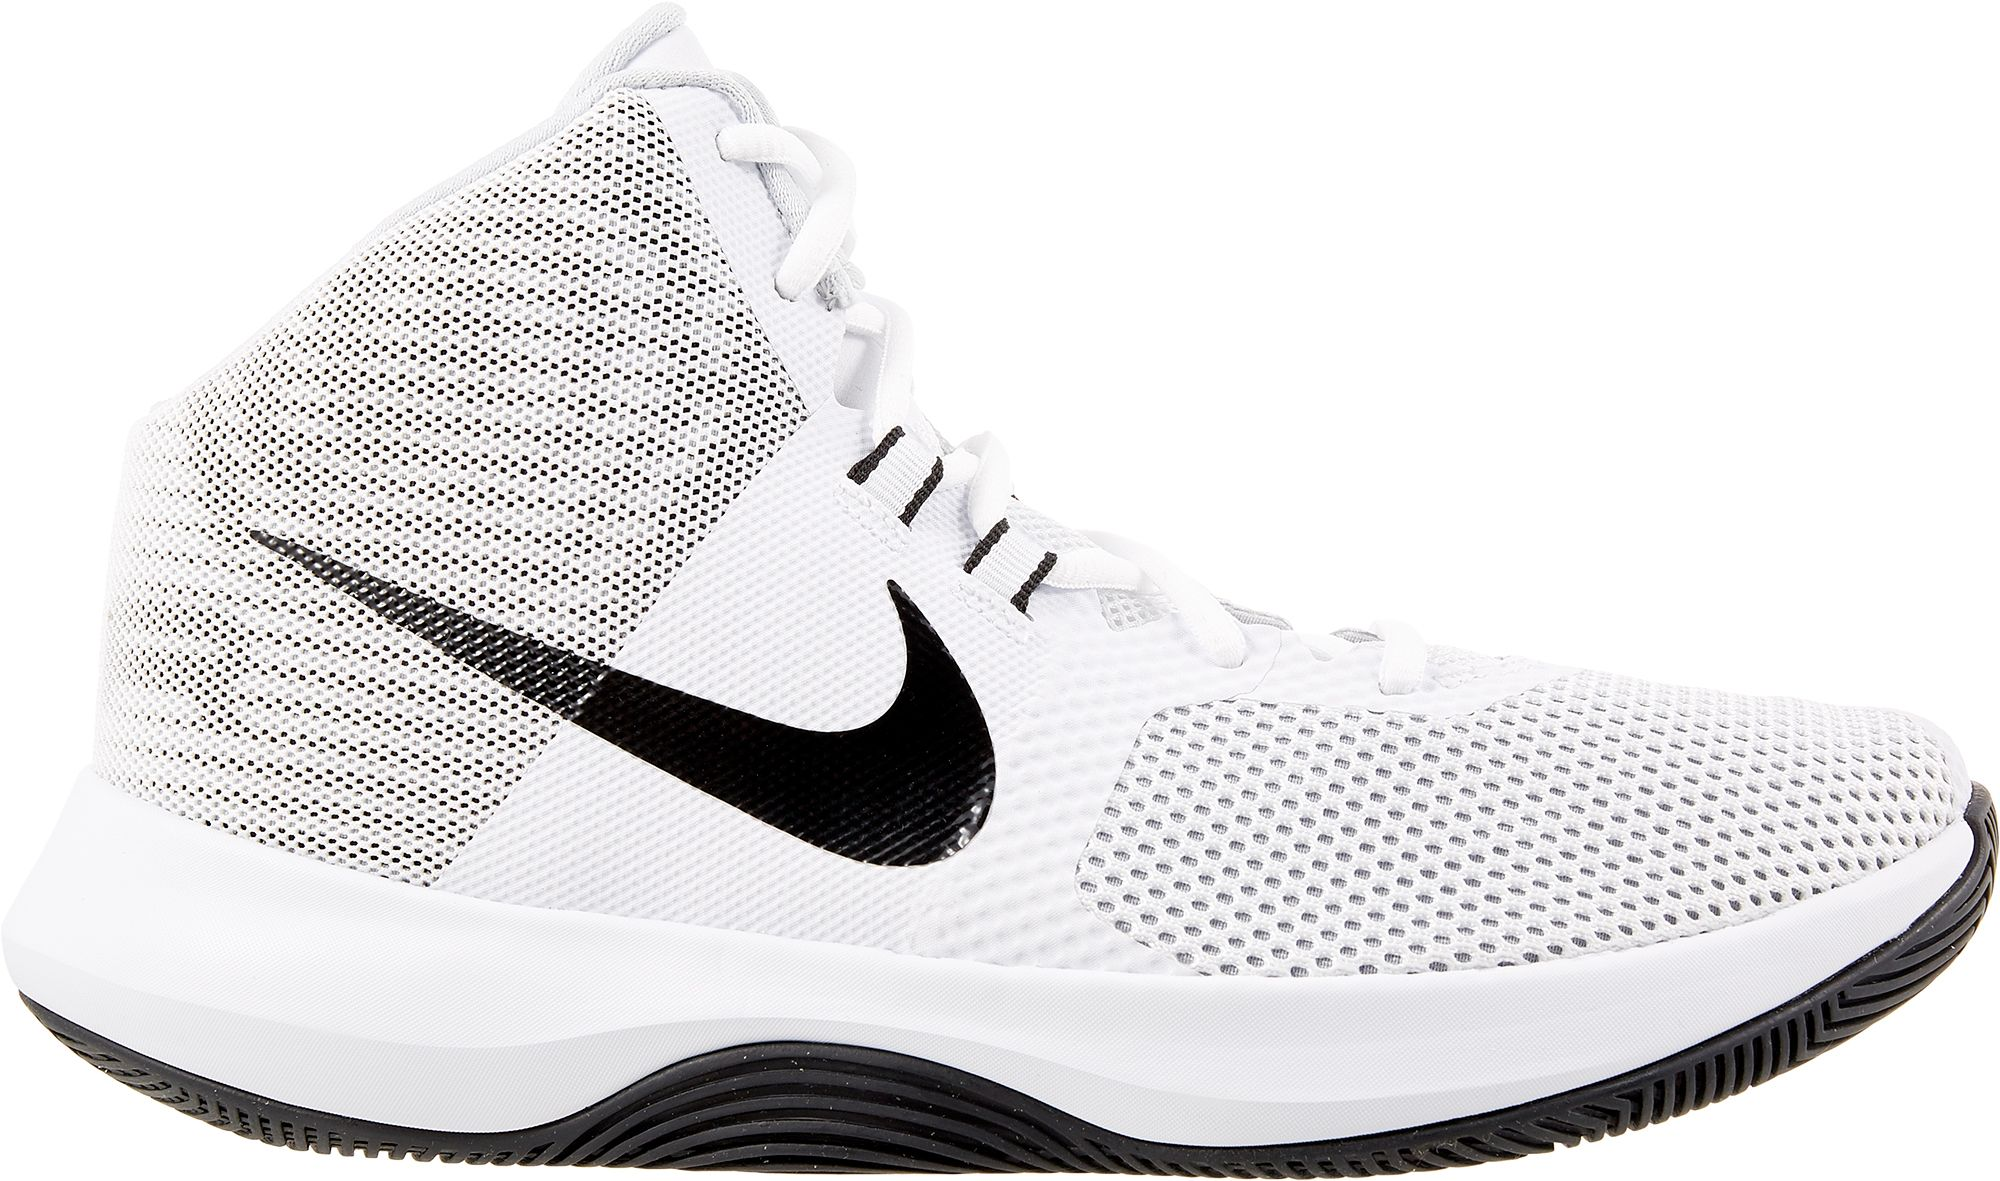 Product Image · Nike Women's Air Precision Basketball Shoes. White; Black